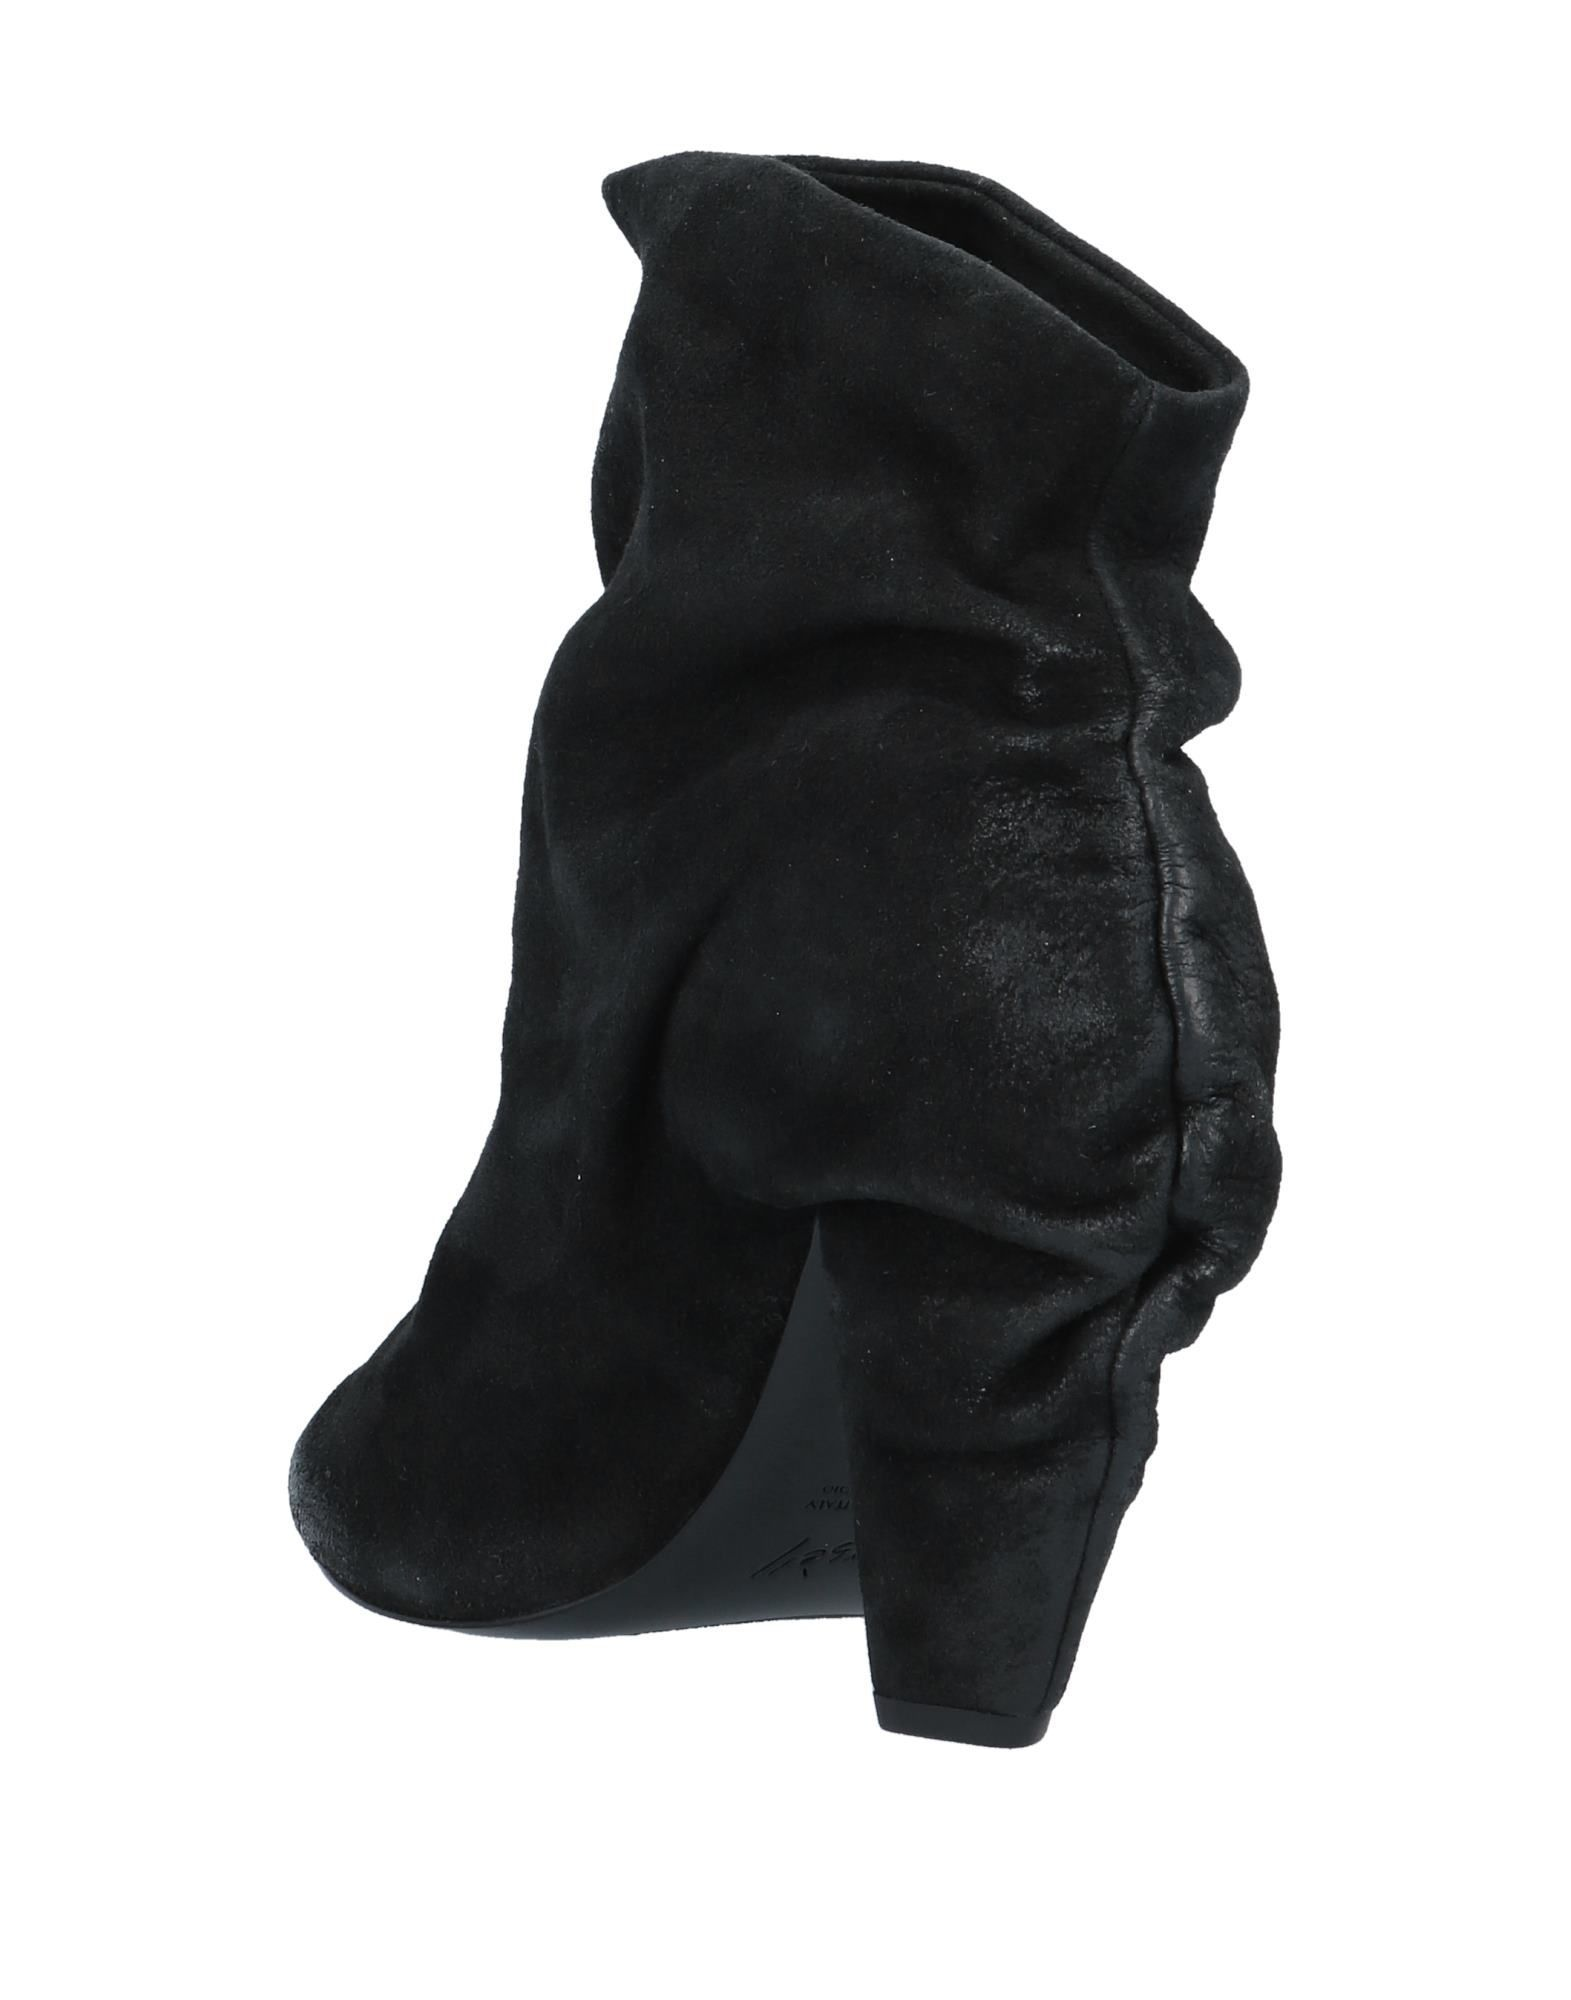 Marsèll Women's Ankle Boots Black Leather